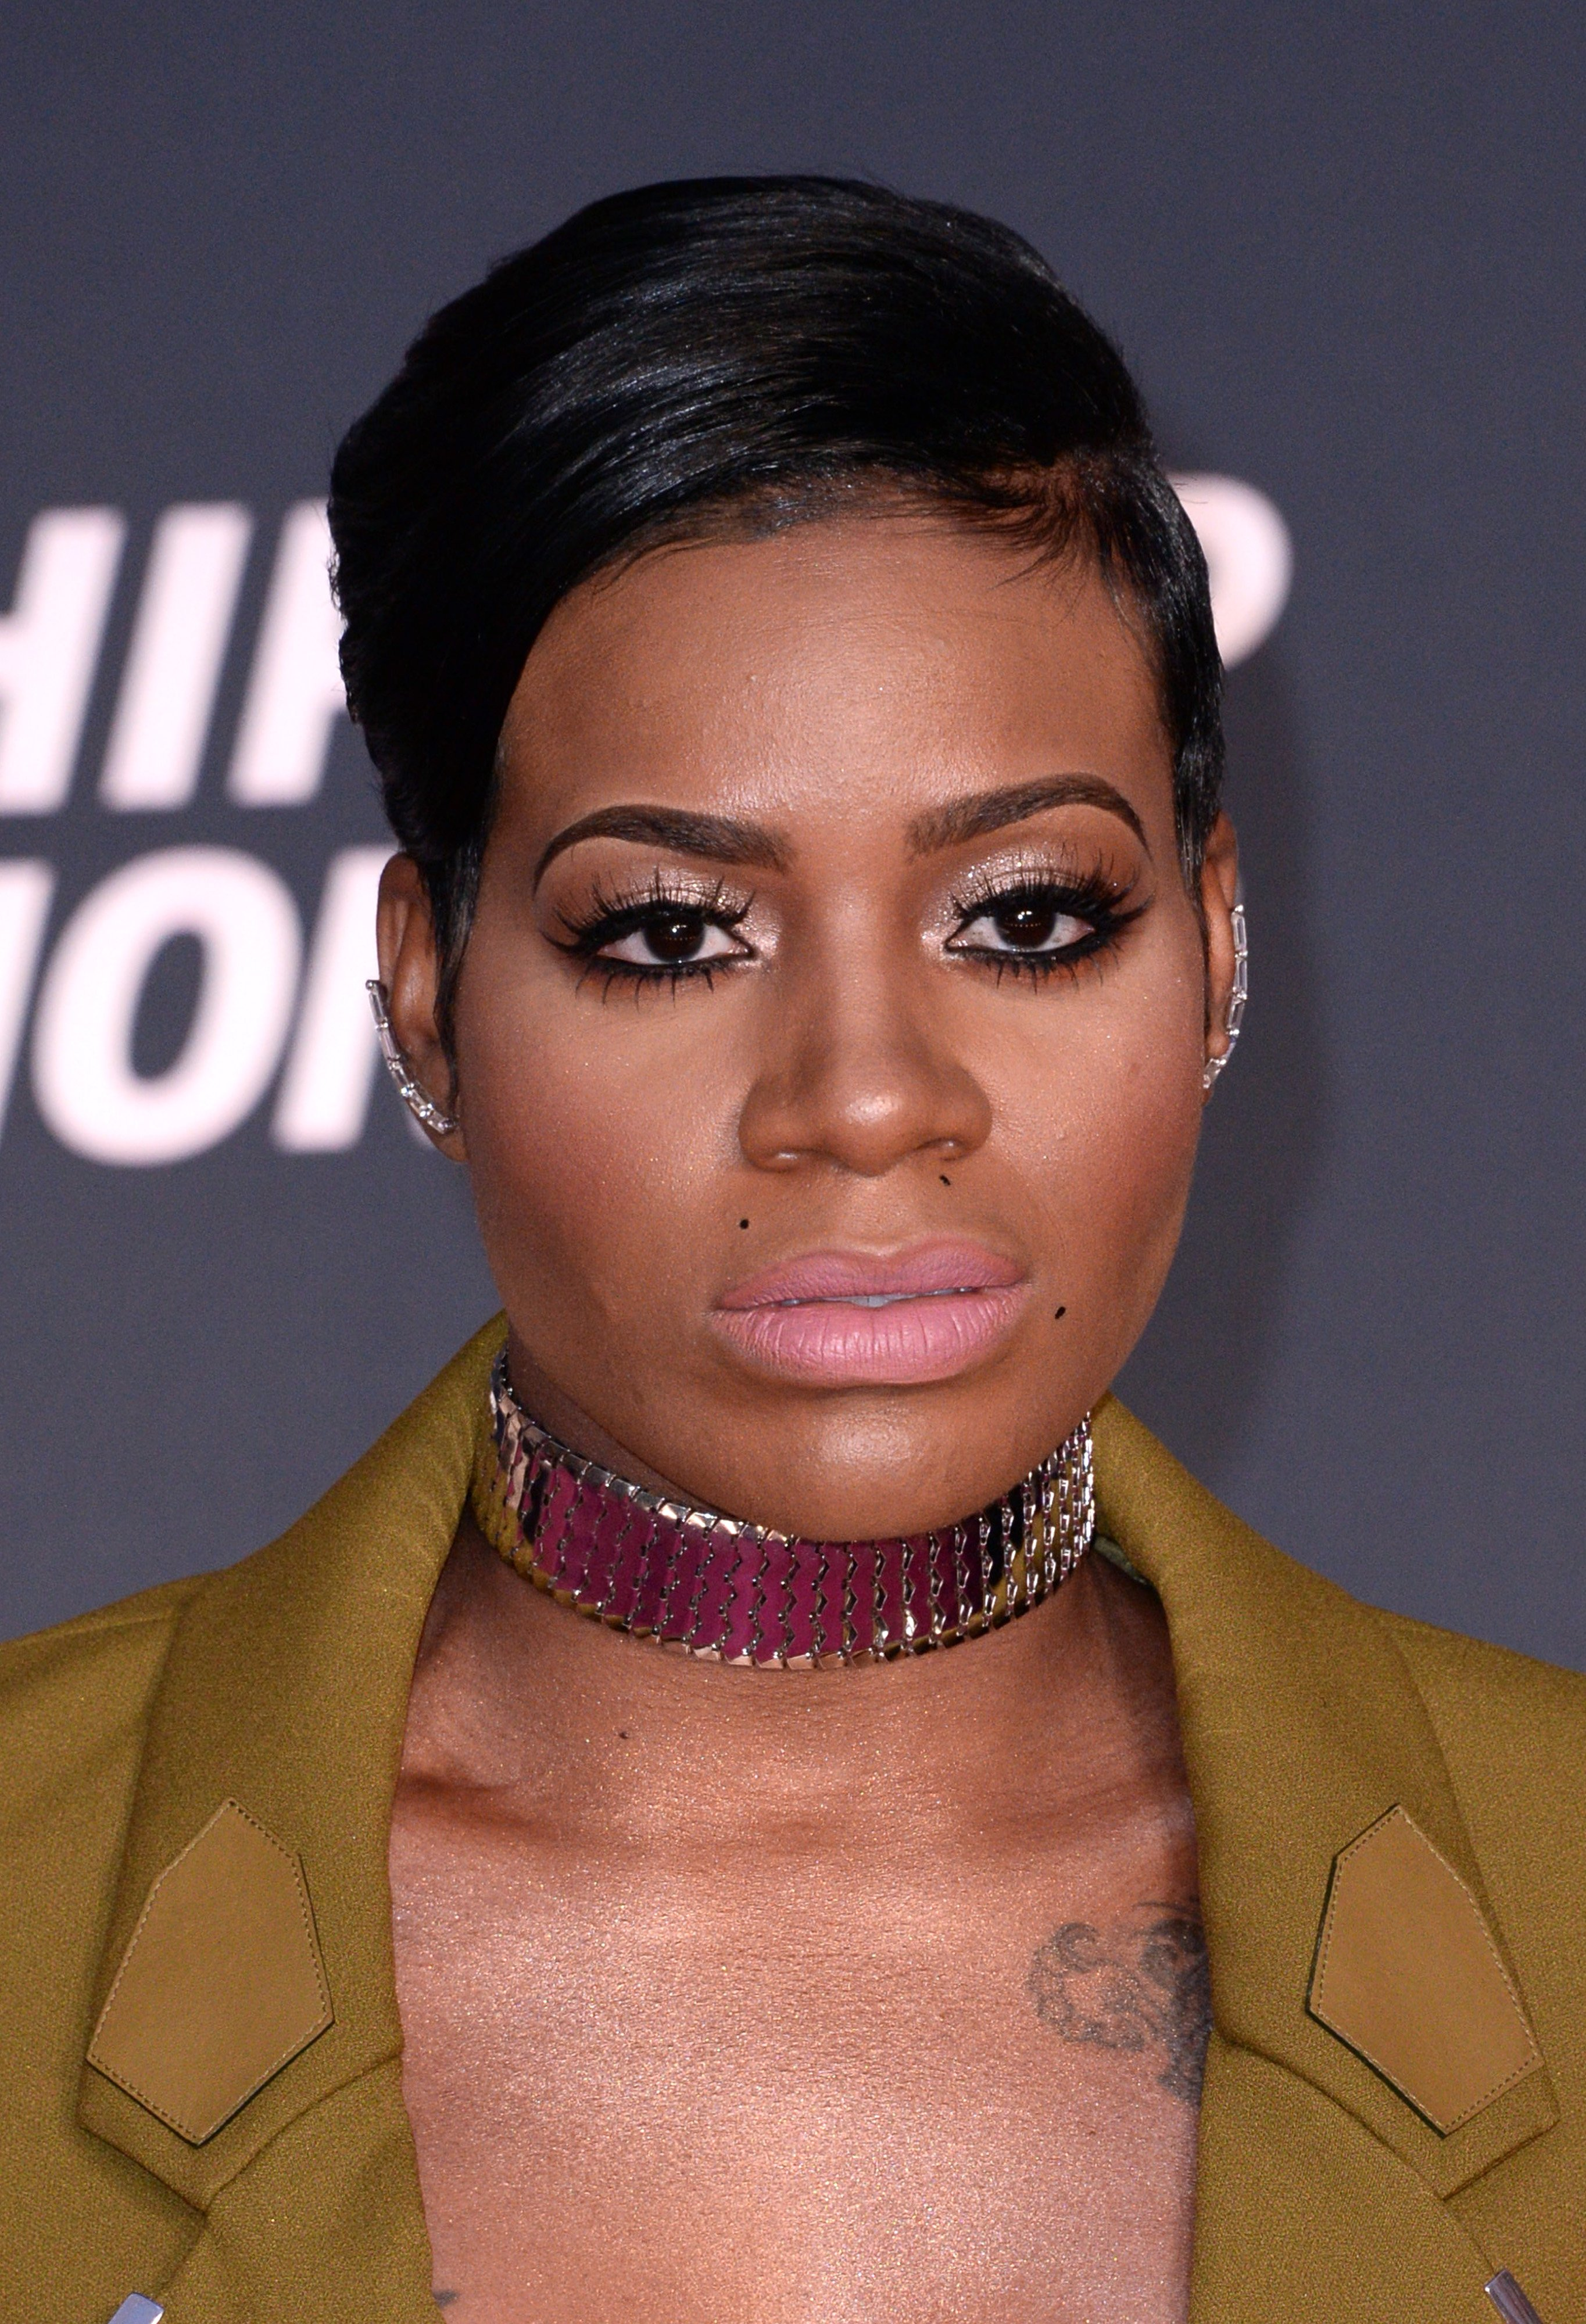 Fantasia Barrino at the 2016 VH1 Hip Hop Honors at Hammerstein Ballroom on July 11, 2016.| Photo: Getty Images